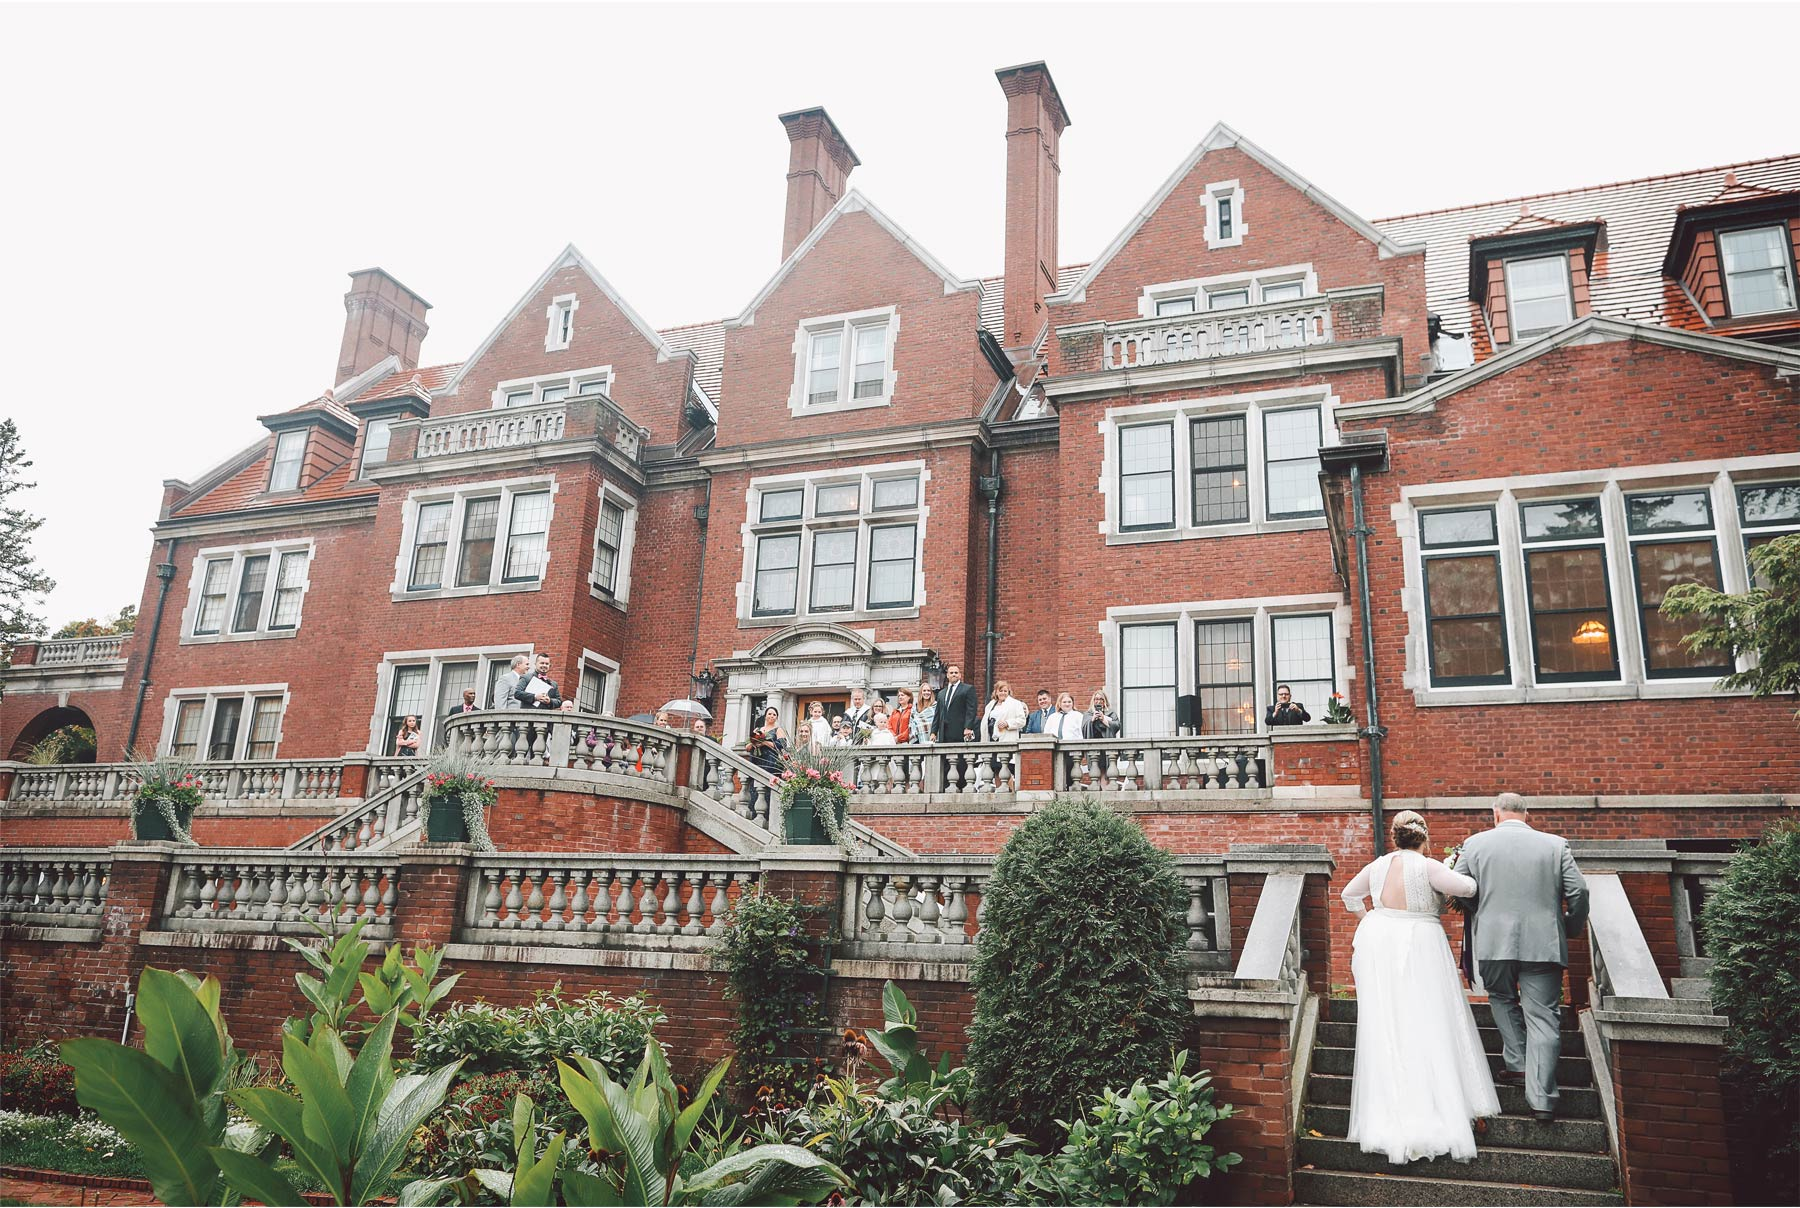 12-Duluth-Minnesota-Wedding-Photography-by-Vick-Photography-Glensheen-Mansion-Outdoor-Ceremony-Rain-Fall-Autumn-Kelli-and-Marc.jpg